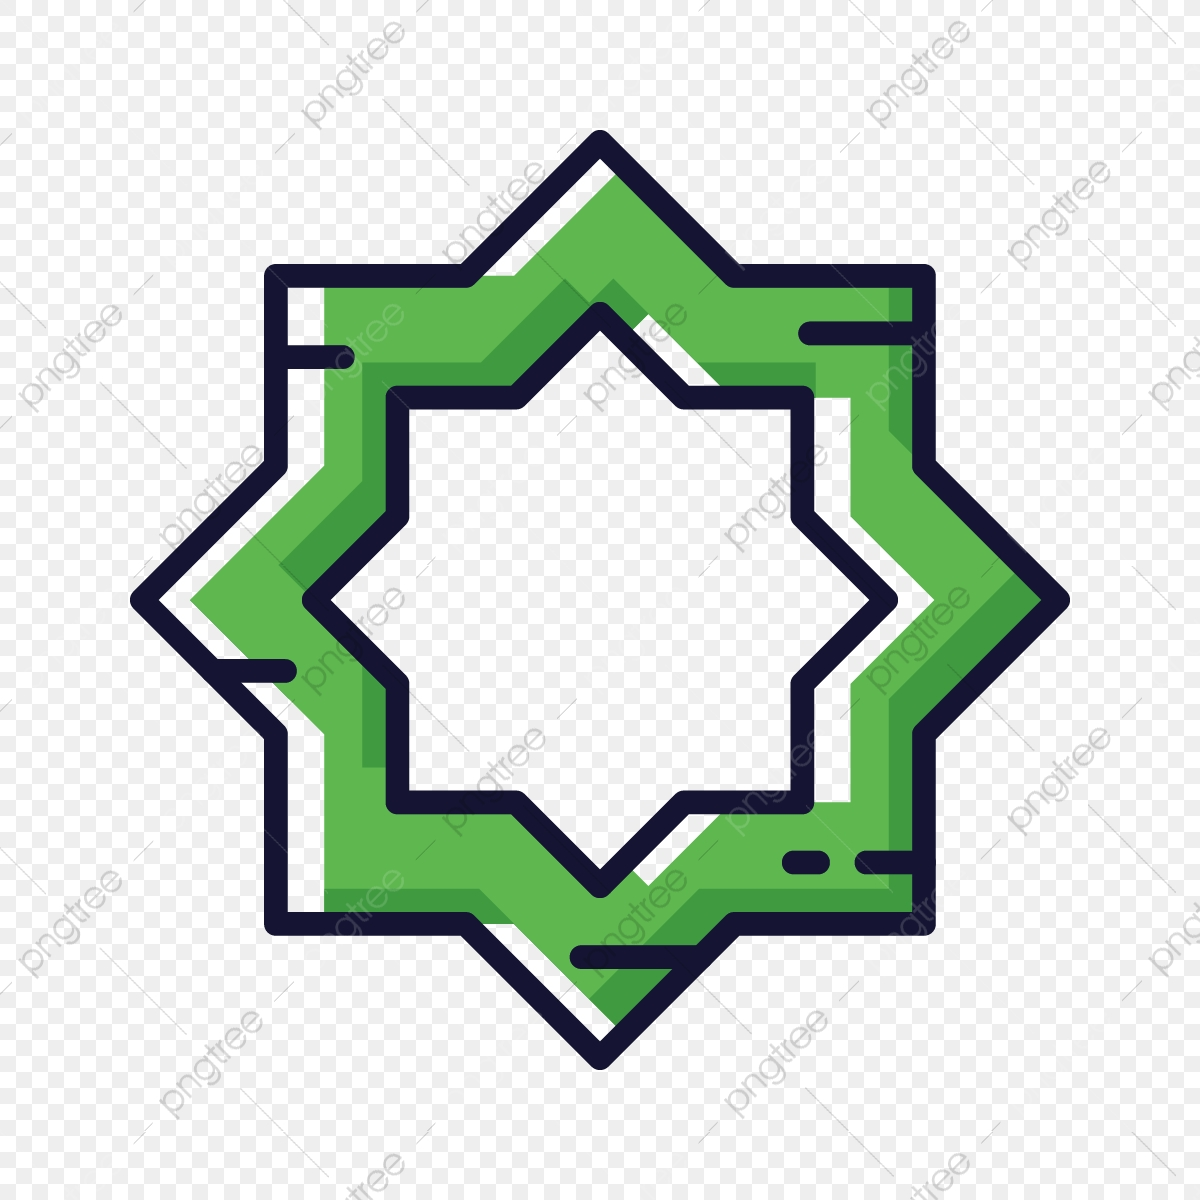 islamic flat icon islam muslim holy png and vector with transparent background for free download https pngtree com freepng islamic flat icon 4368315 html